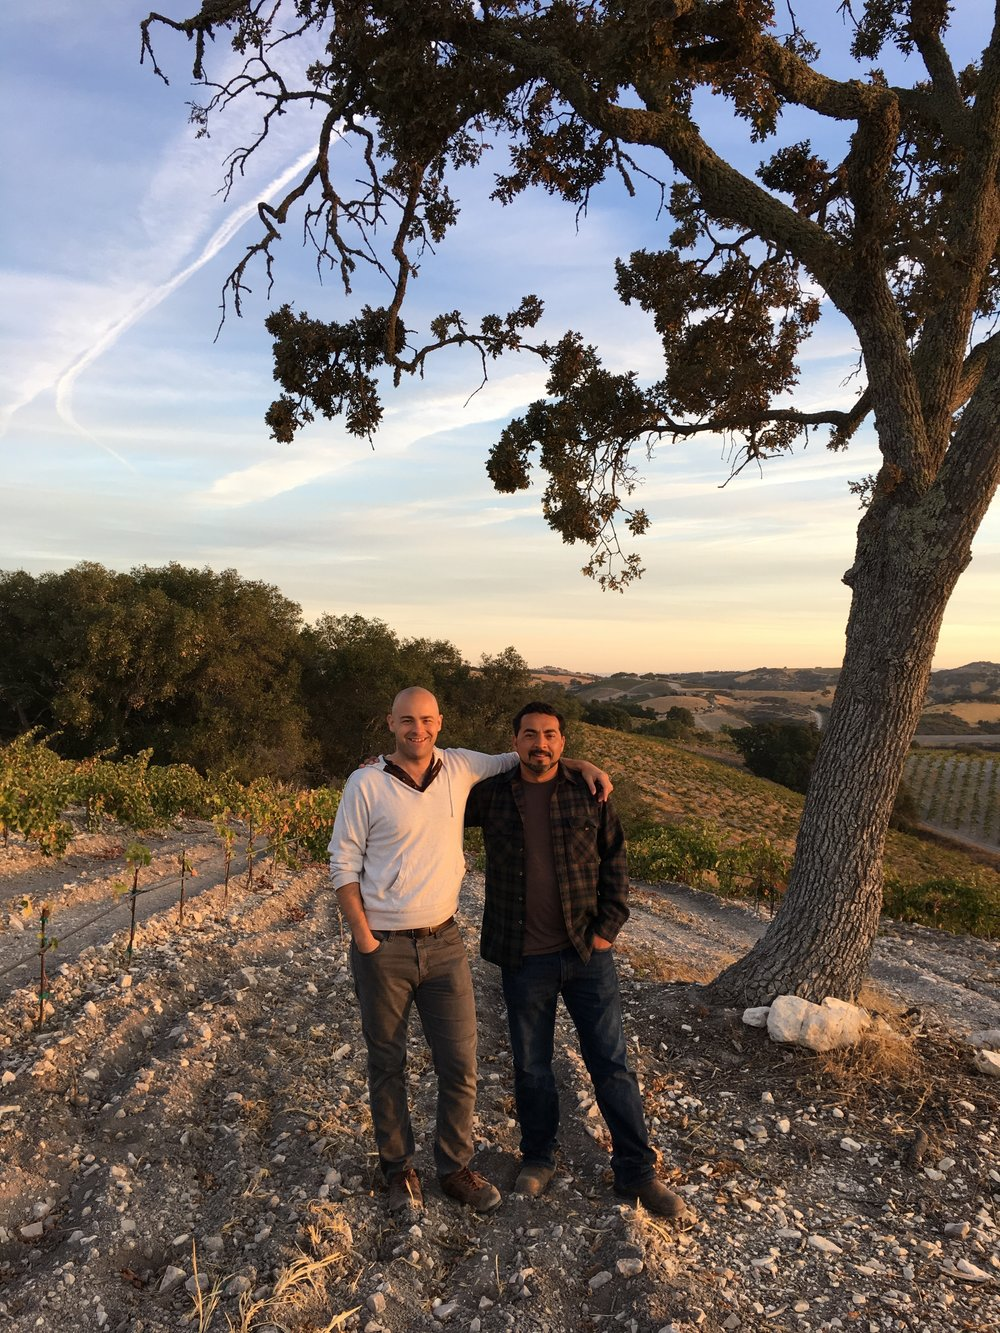 Edgar Torres and myself. Edgar came here with nothing from Mexico, and built a successful wine brand out of good old fashioned sweat equity.